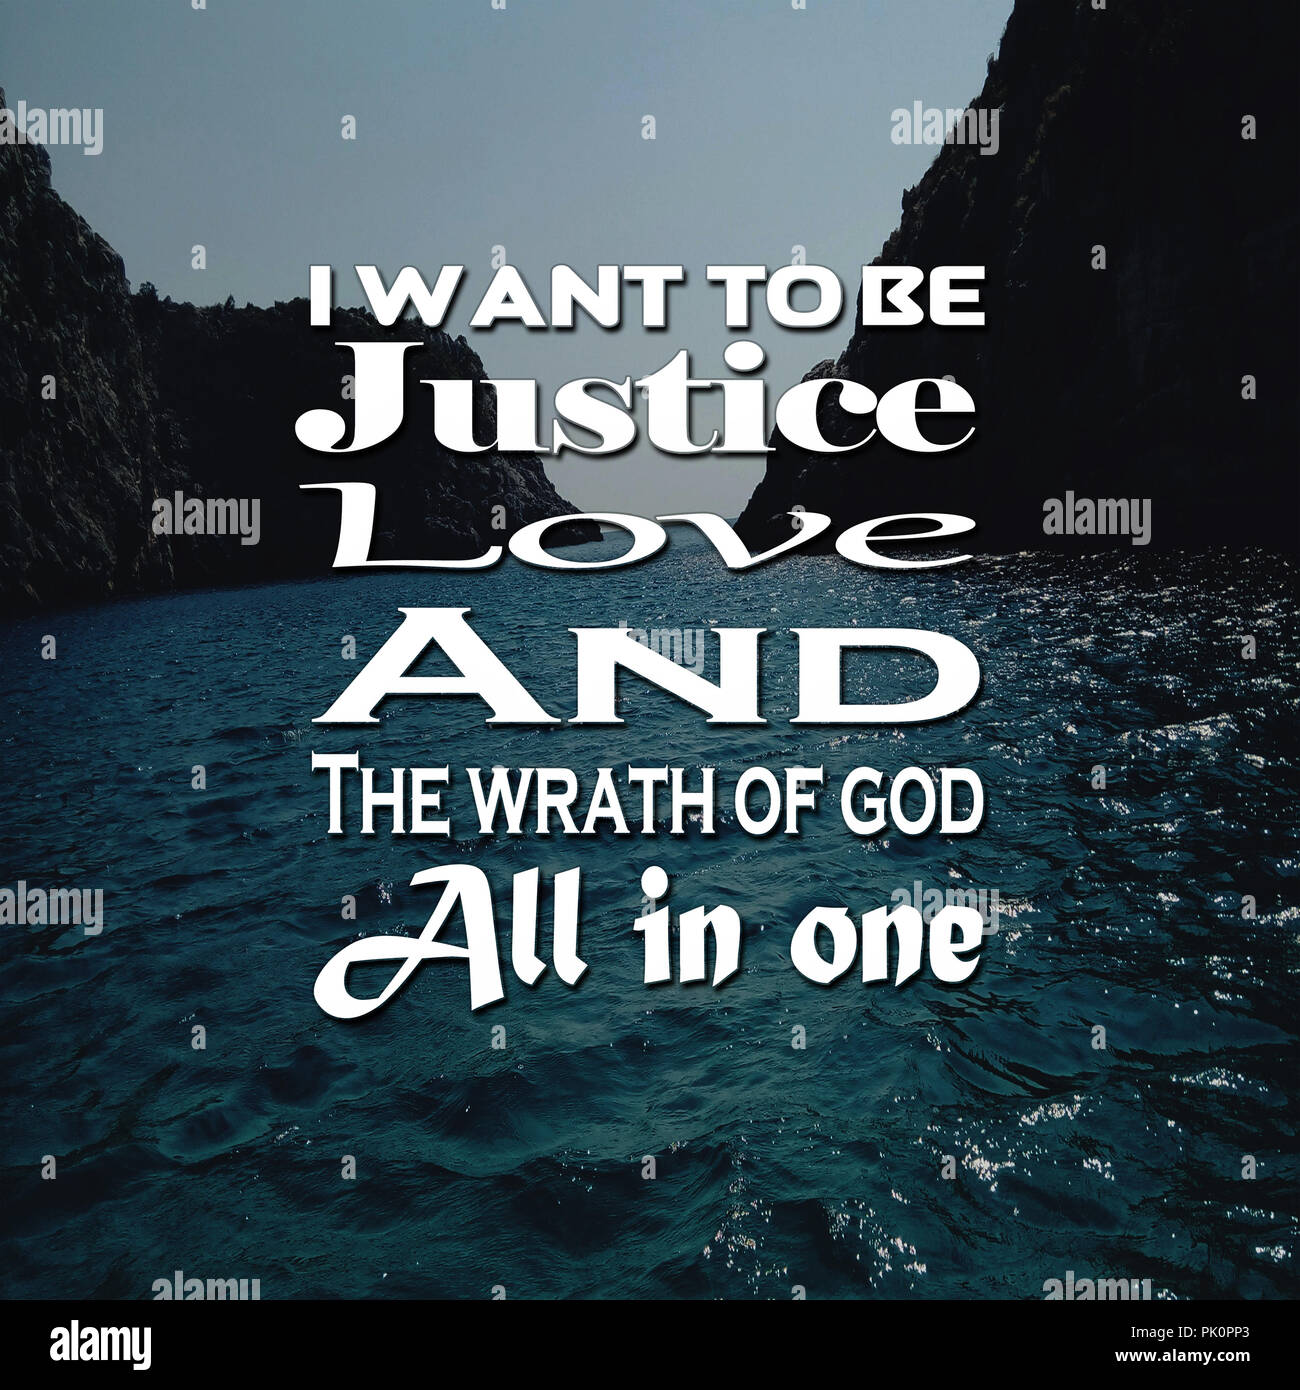 Image of: Purpose Inspirational Quotes Want To Be Justice Love And The Wrath Of God All In One Positive Motivational Alamy Inspirational Quotes Want To Be Justice Love And The Wrath Of God